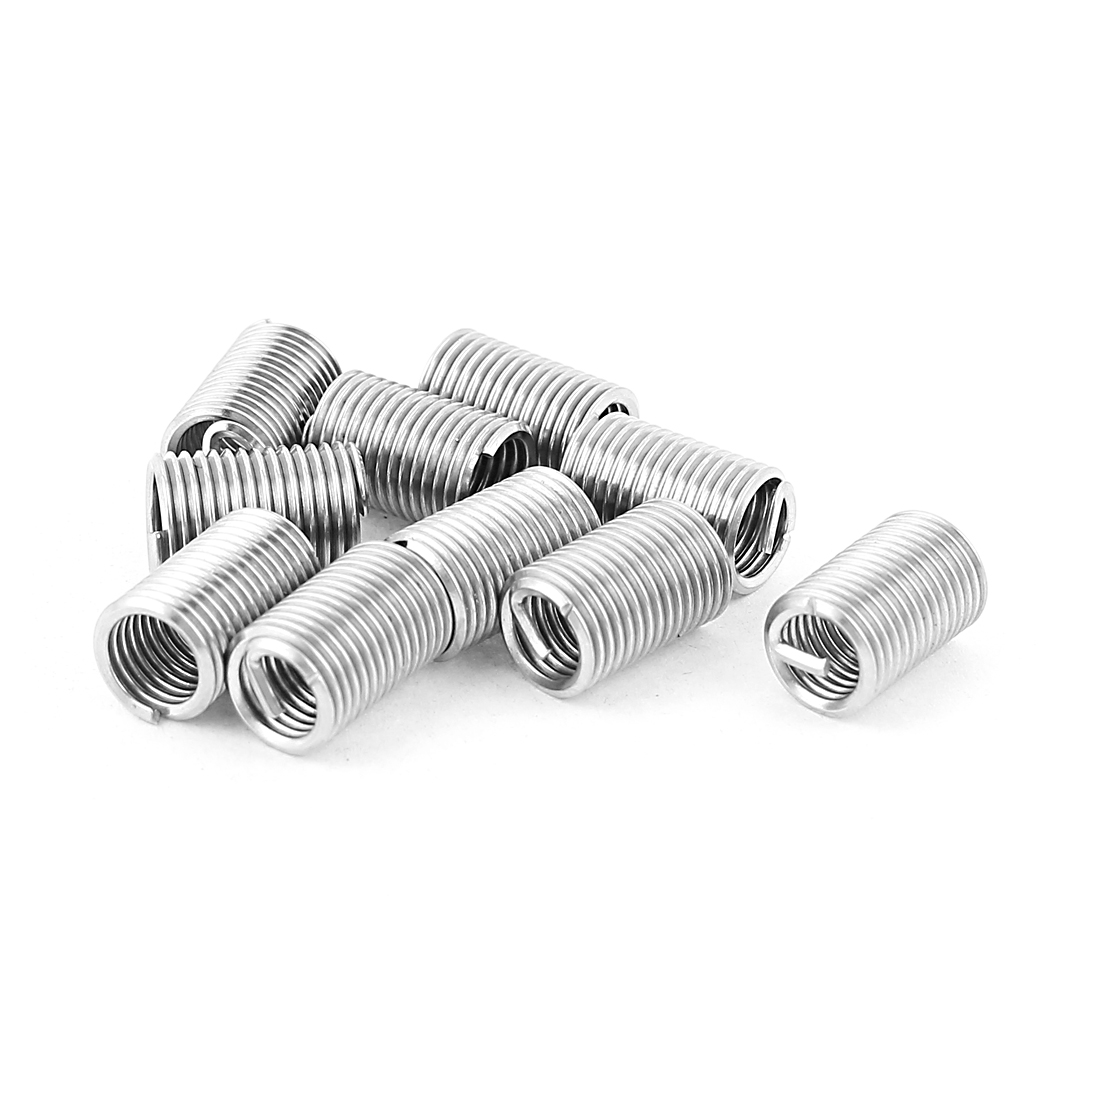 10Pcs 304 Stainless Steel Helicoil Wire Thread Repair Inserts M6 x 1mm x 2D